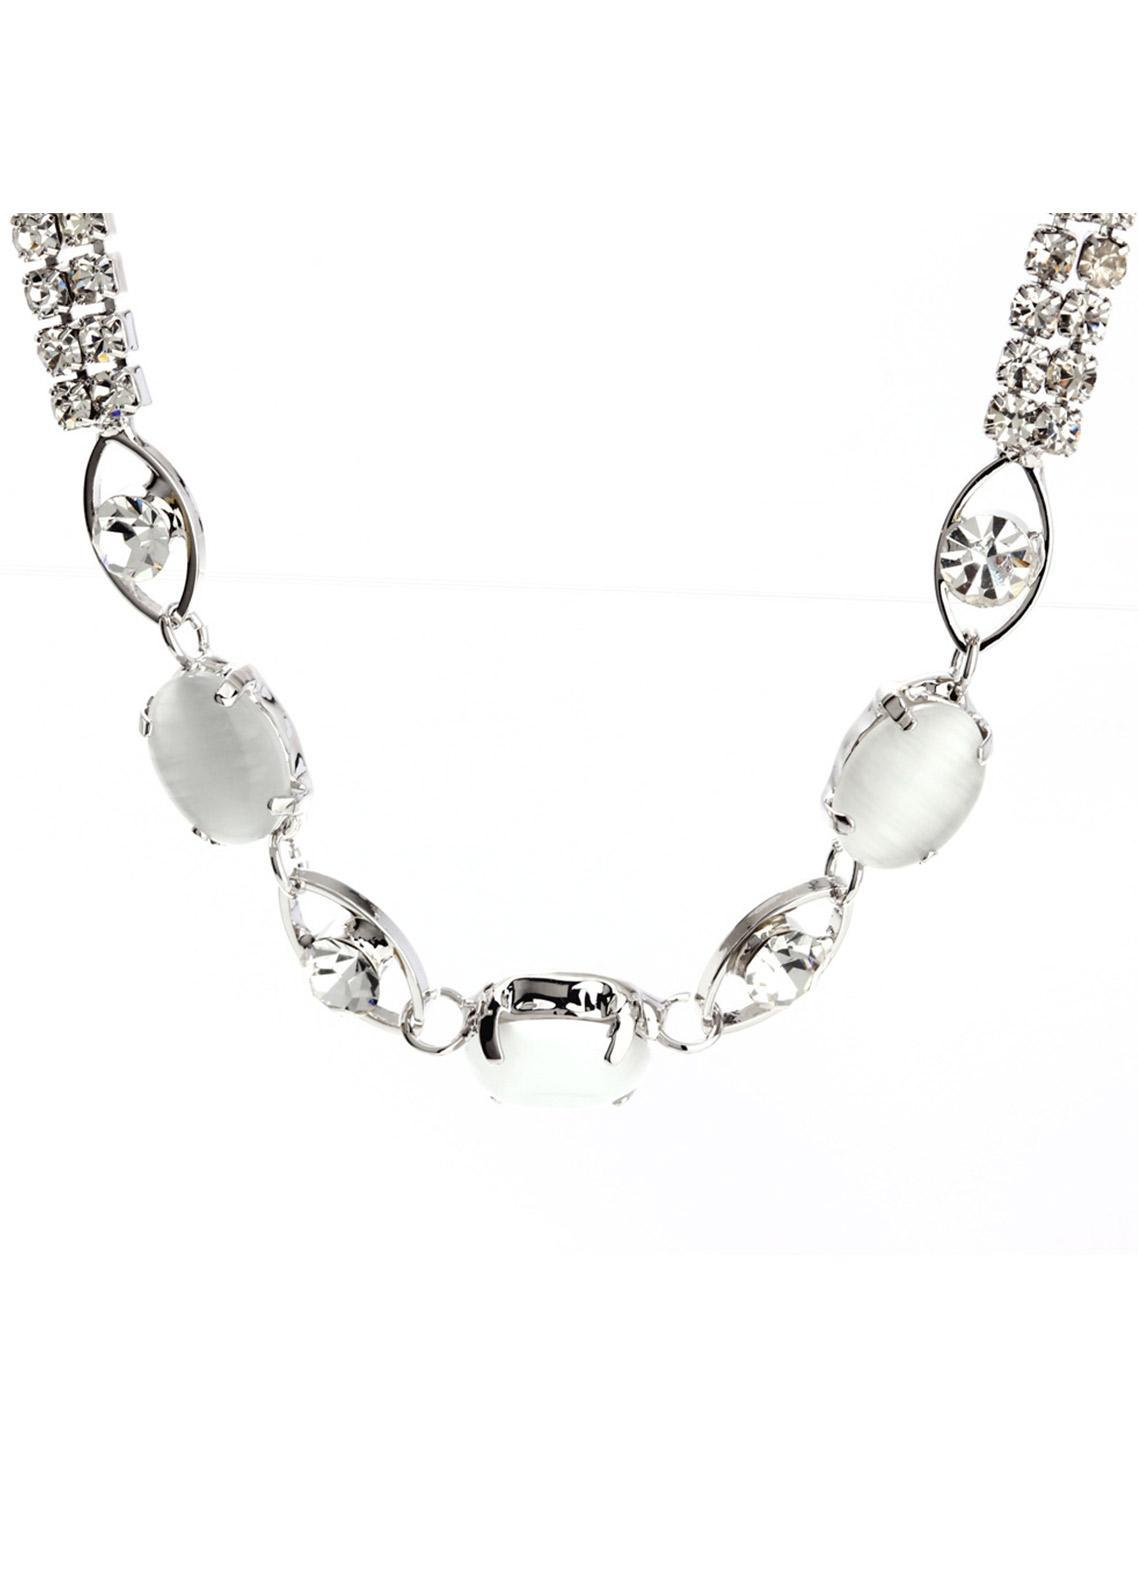 Anna Grace London Silver Crystal Sparkling Pearl Bracelet AGB0068 - Ladies Jewellery